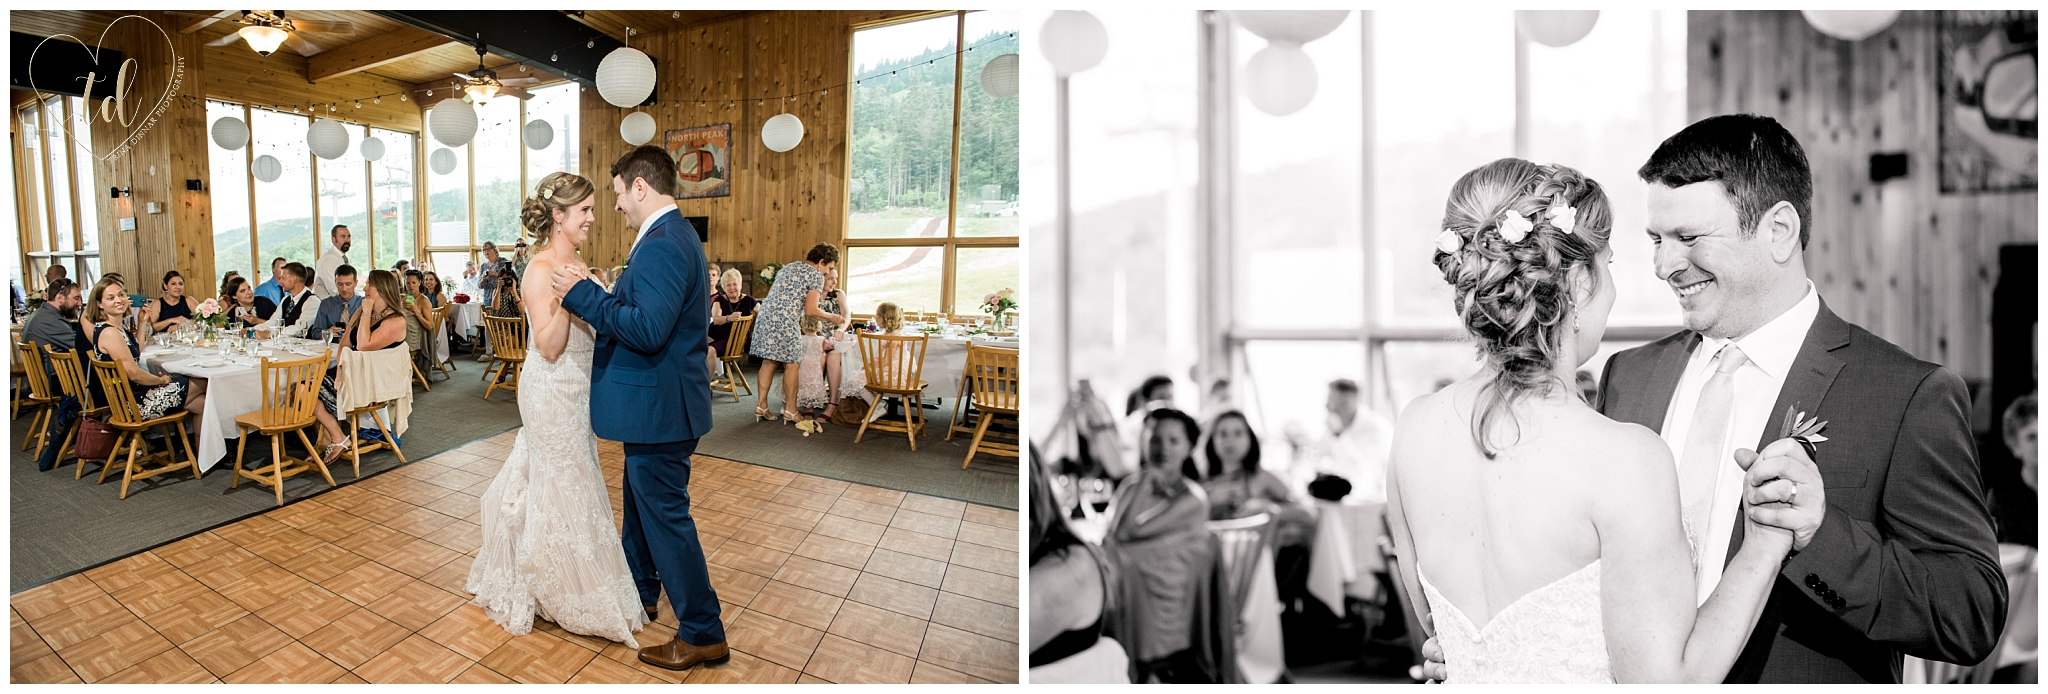 Couple shares their First Dance at Peak Lodge during their Sunday River Wedding.